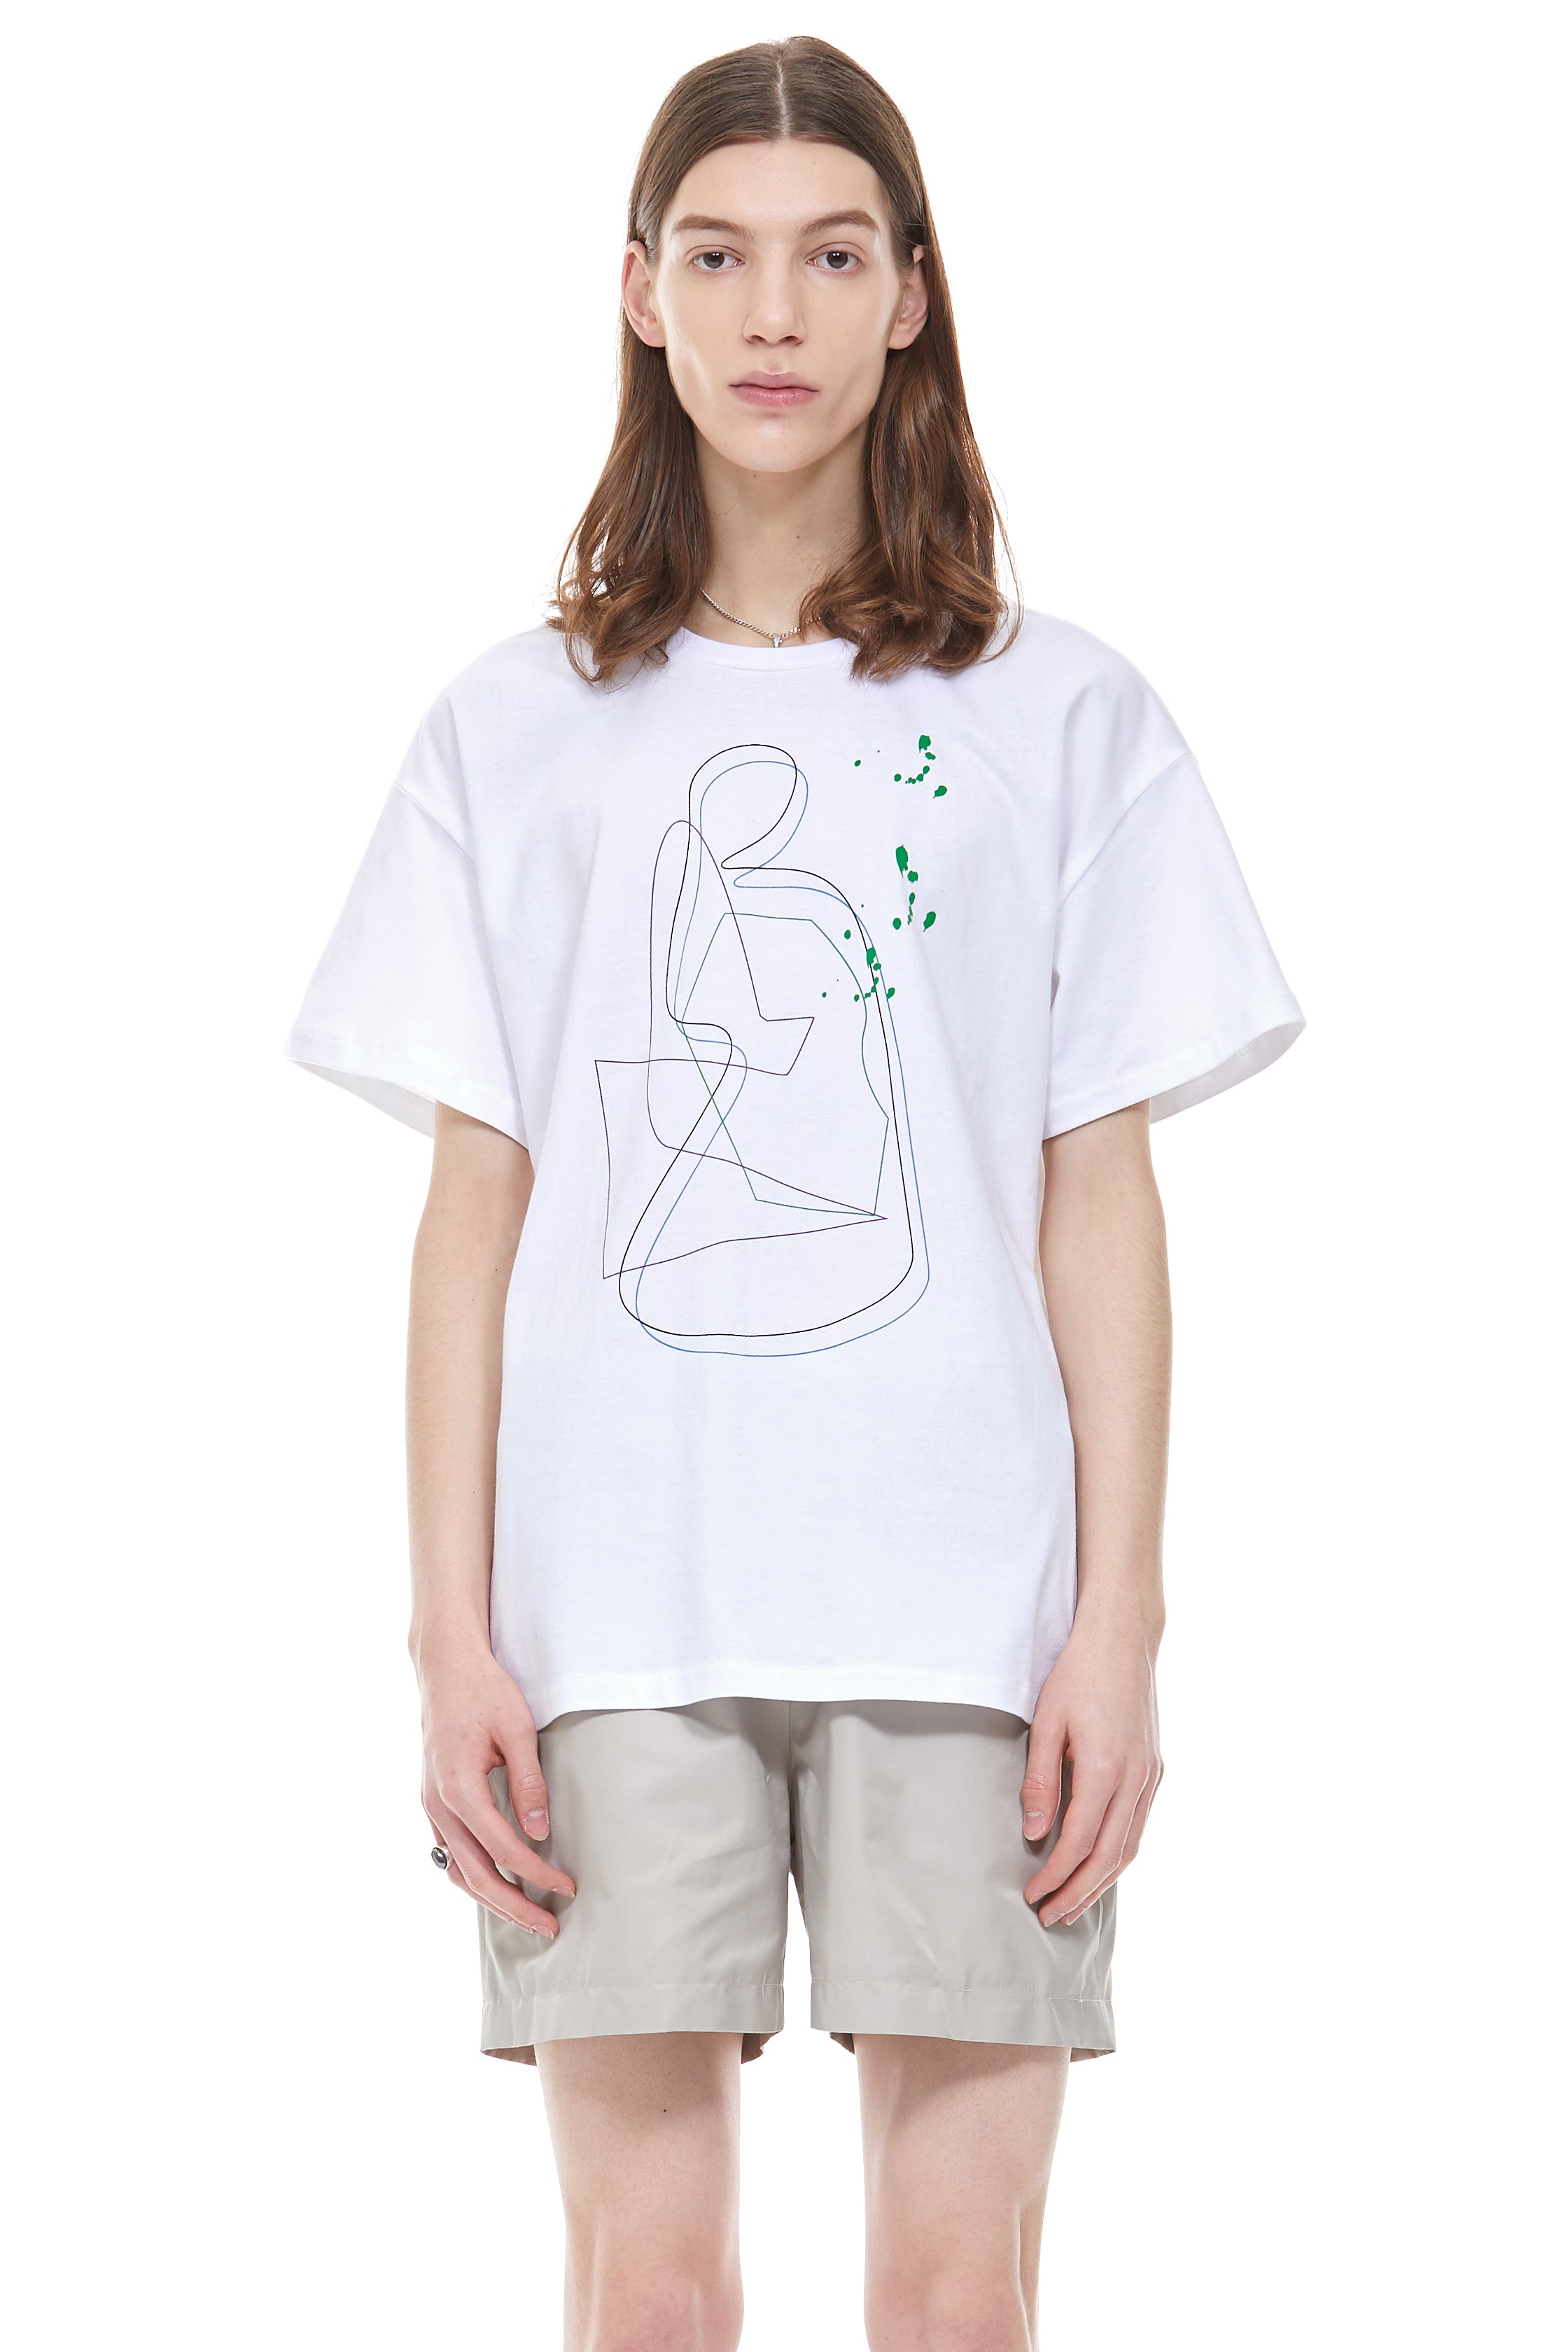 Painting Archive T-Shirt in White